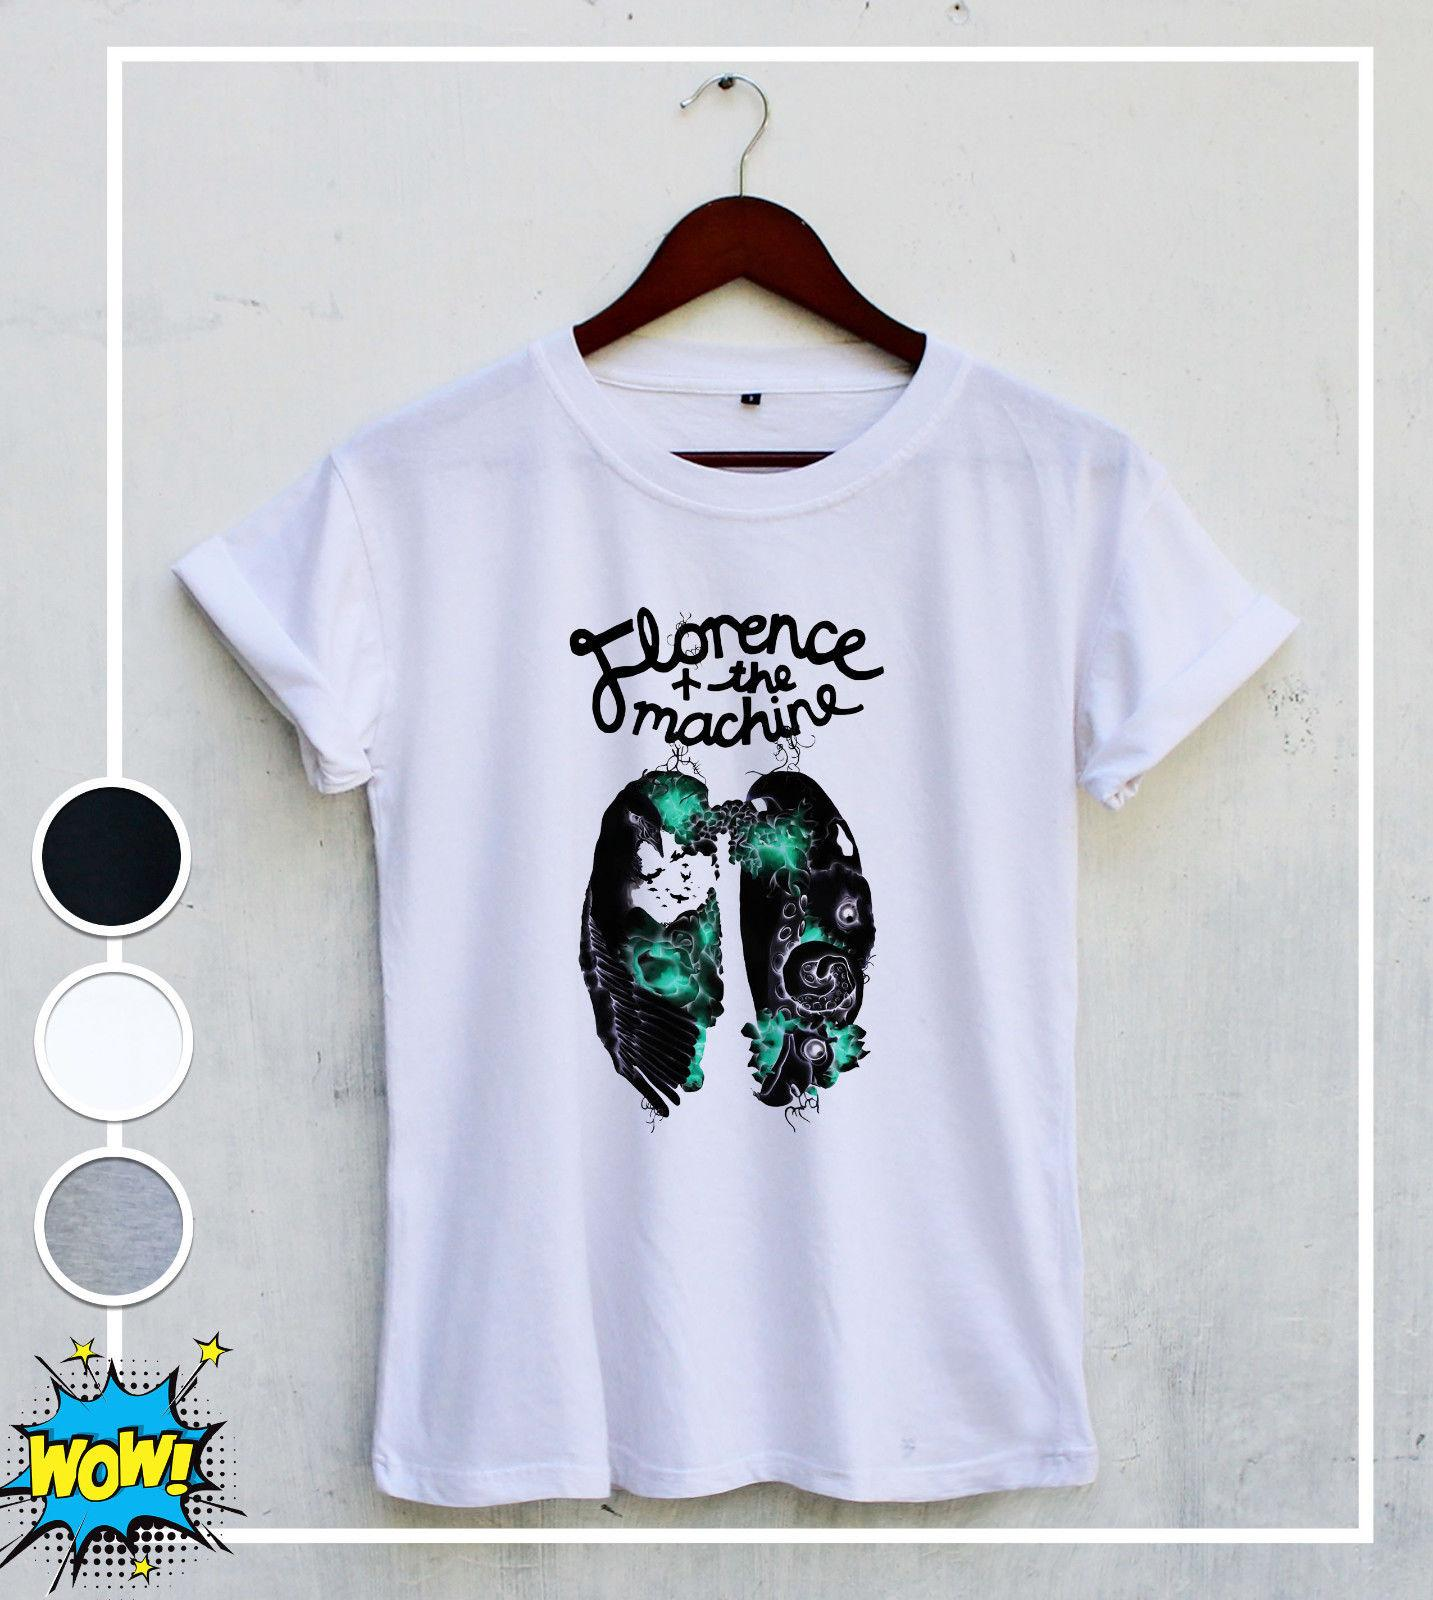 49e67d88 Florence And The Machine LUNGS BIRD Tour Rock Music Best T Shirt Unisex  Cotton Funny Unisex Casual Tshirt Top T Shirt Deals Humor Shirts From  Thebestoree, ...